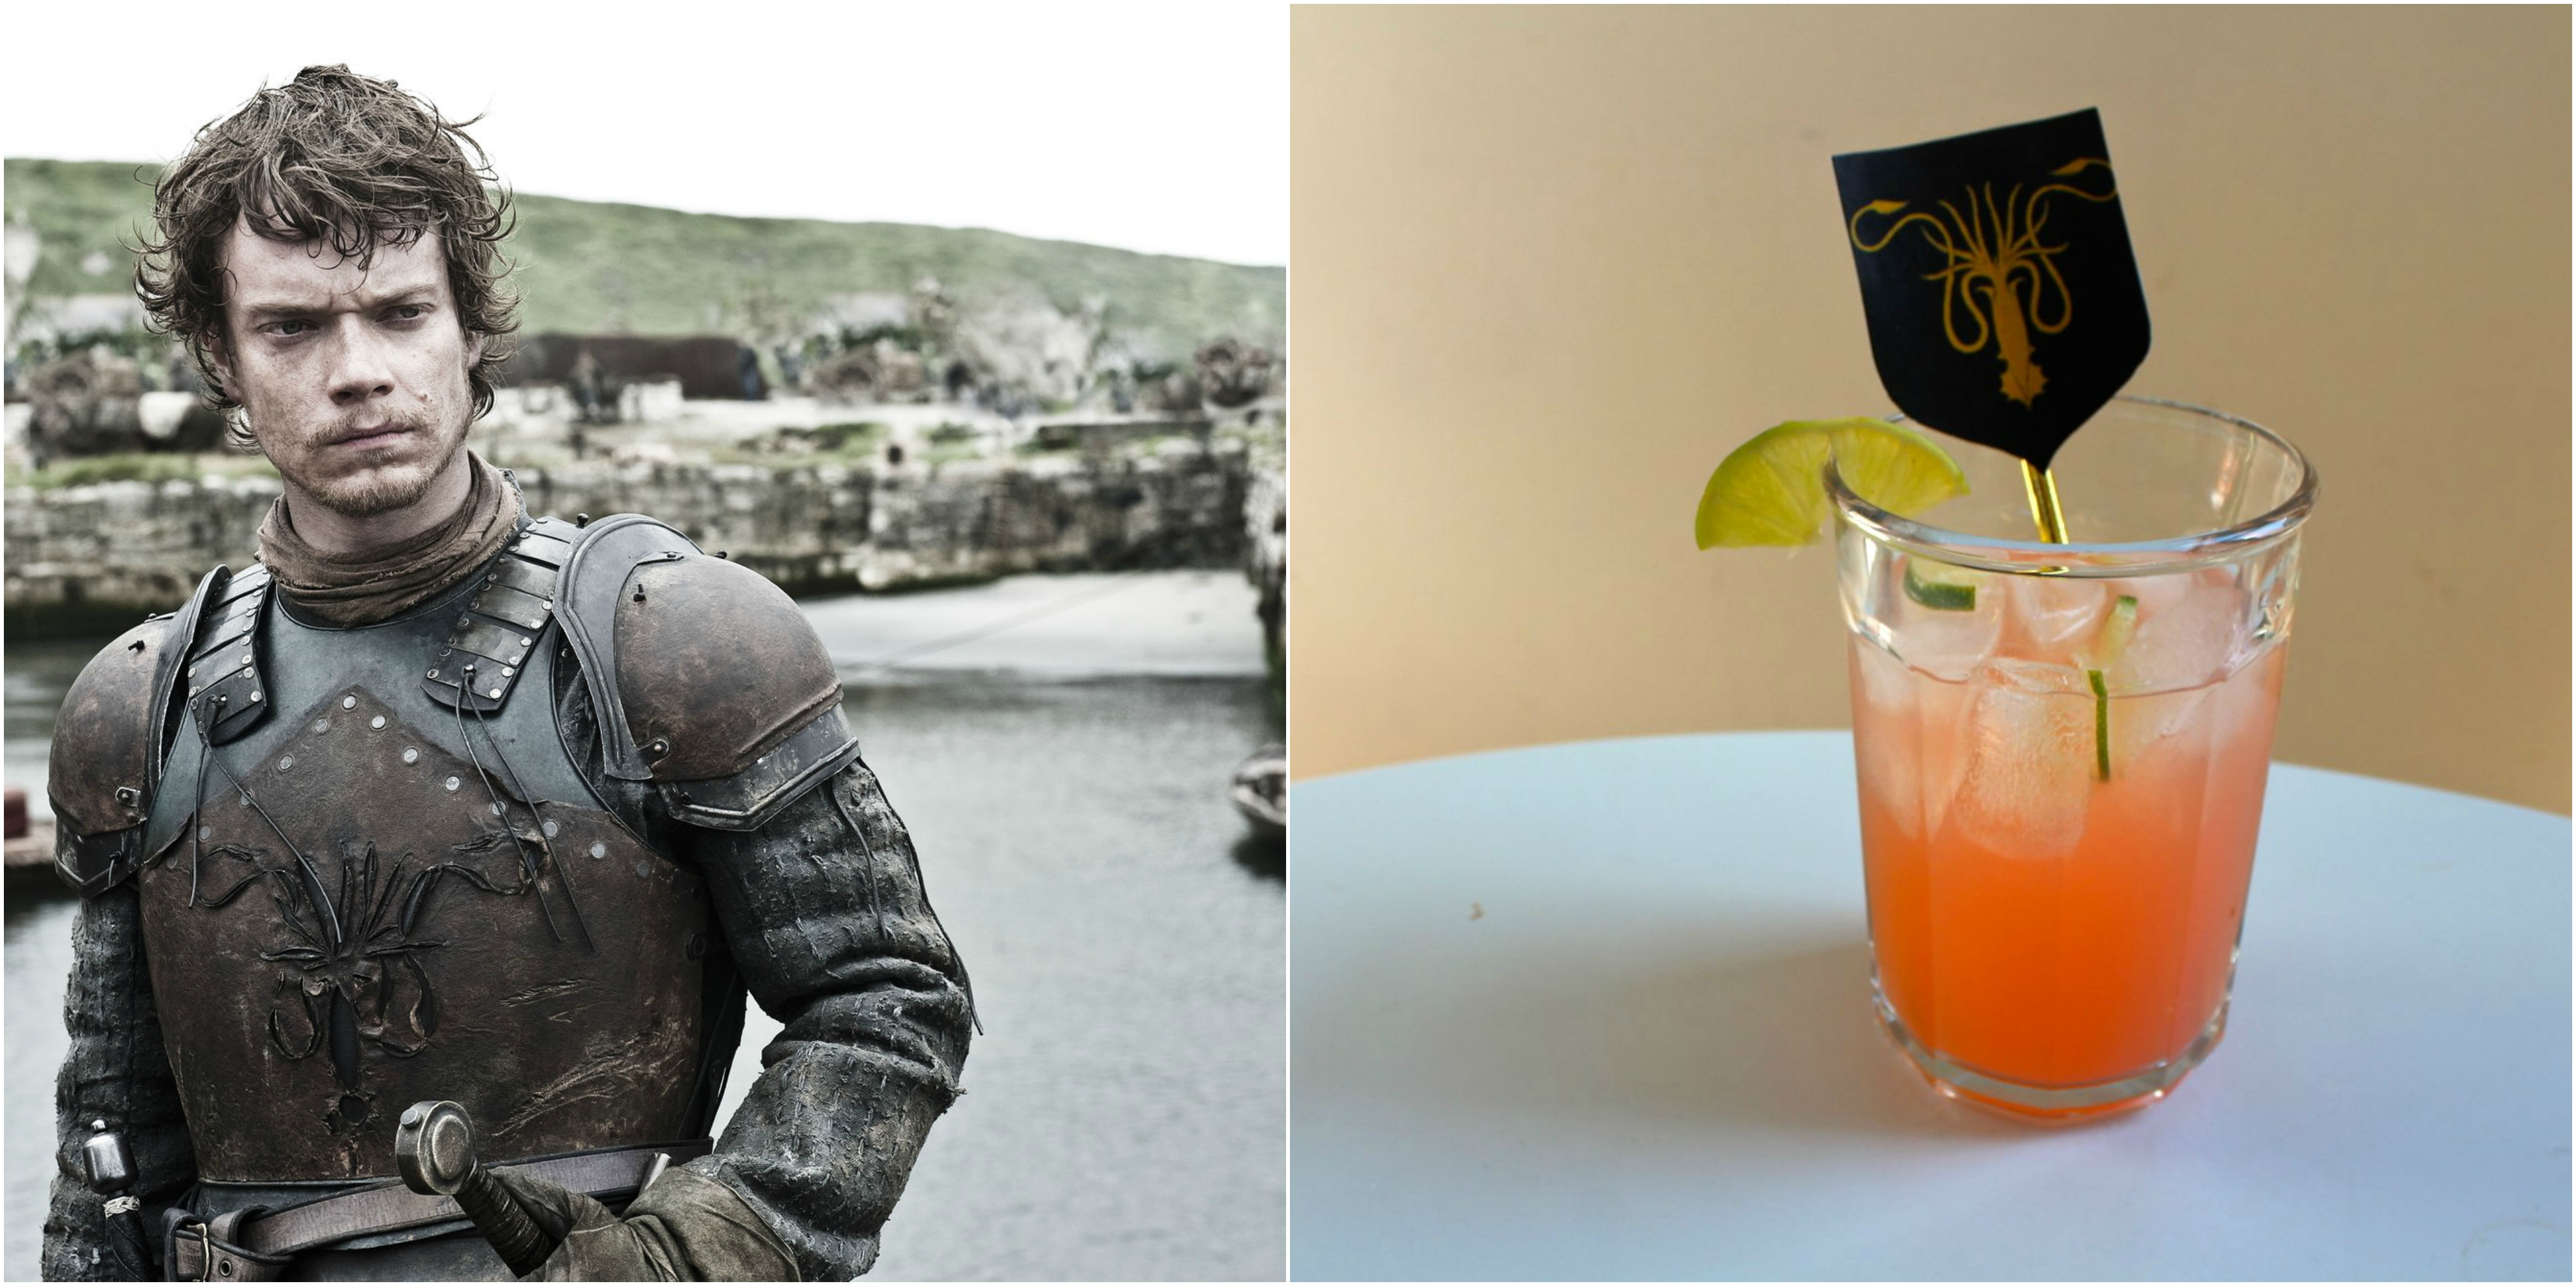 Photo courtesy of gameofthrones.wikia and photo by Victoria Pierce